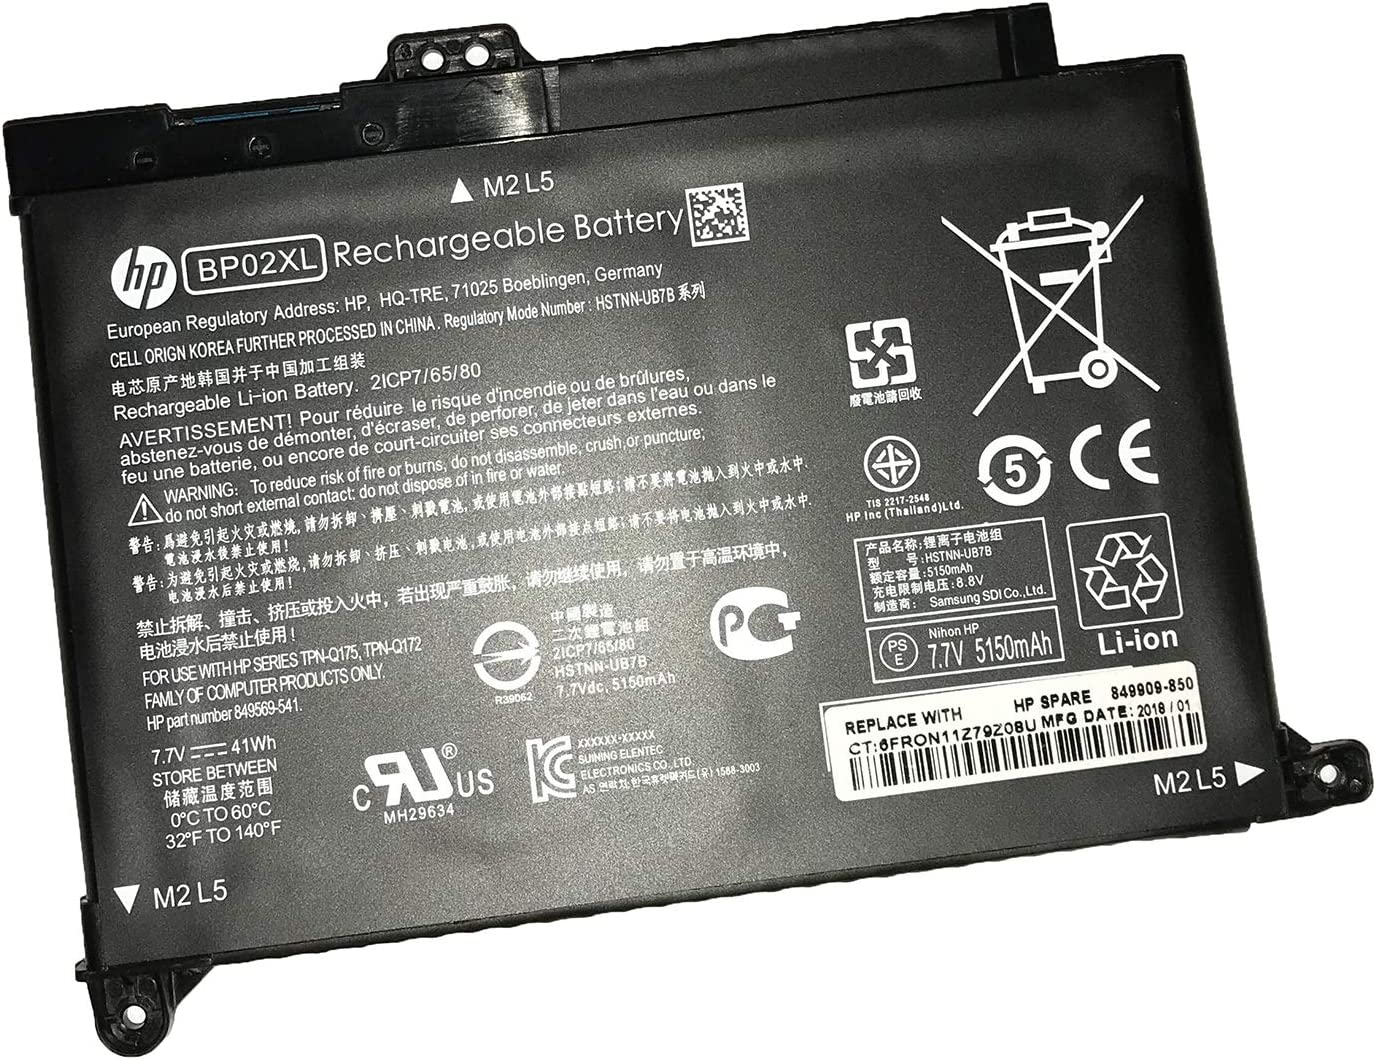 SANISI HP BP02XL 7.7V 41Wh Notebook Battery for HP Pavilion 15-AU000TX to 15-AU654TX,Pavilion 15-AW000 to 15-AWxxx P/N: BP02041XL HSTNN-UB7B HSTNN-LB7H 849569-421 849569-541 849909-850 849909-855